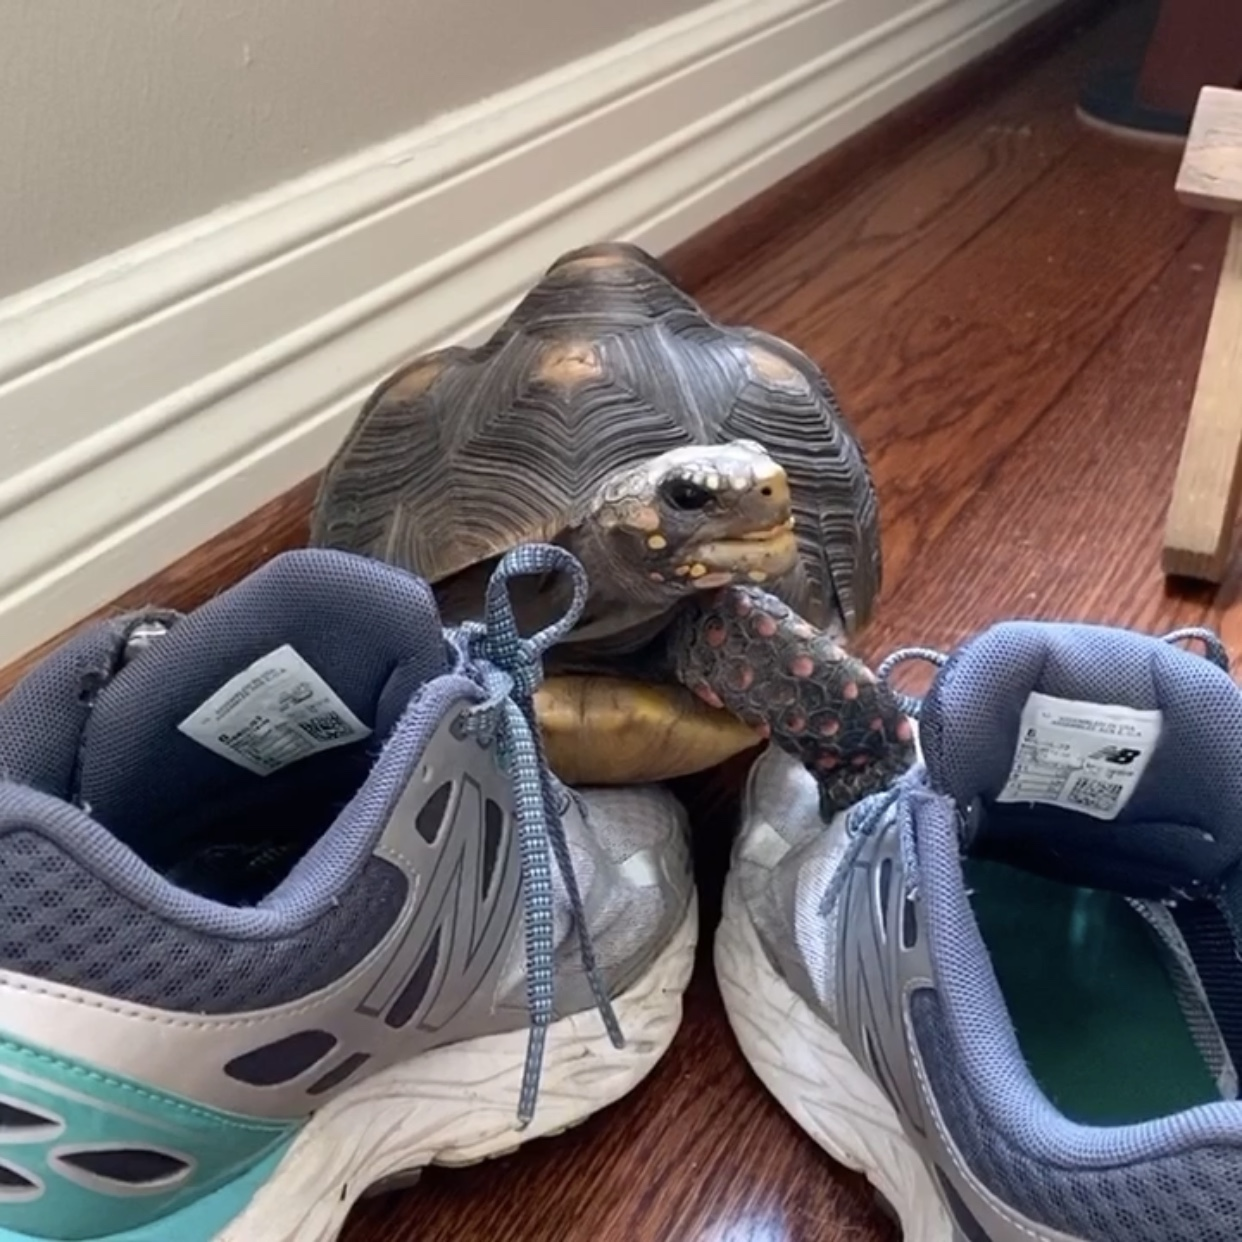 tortoise with tennis shoes